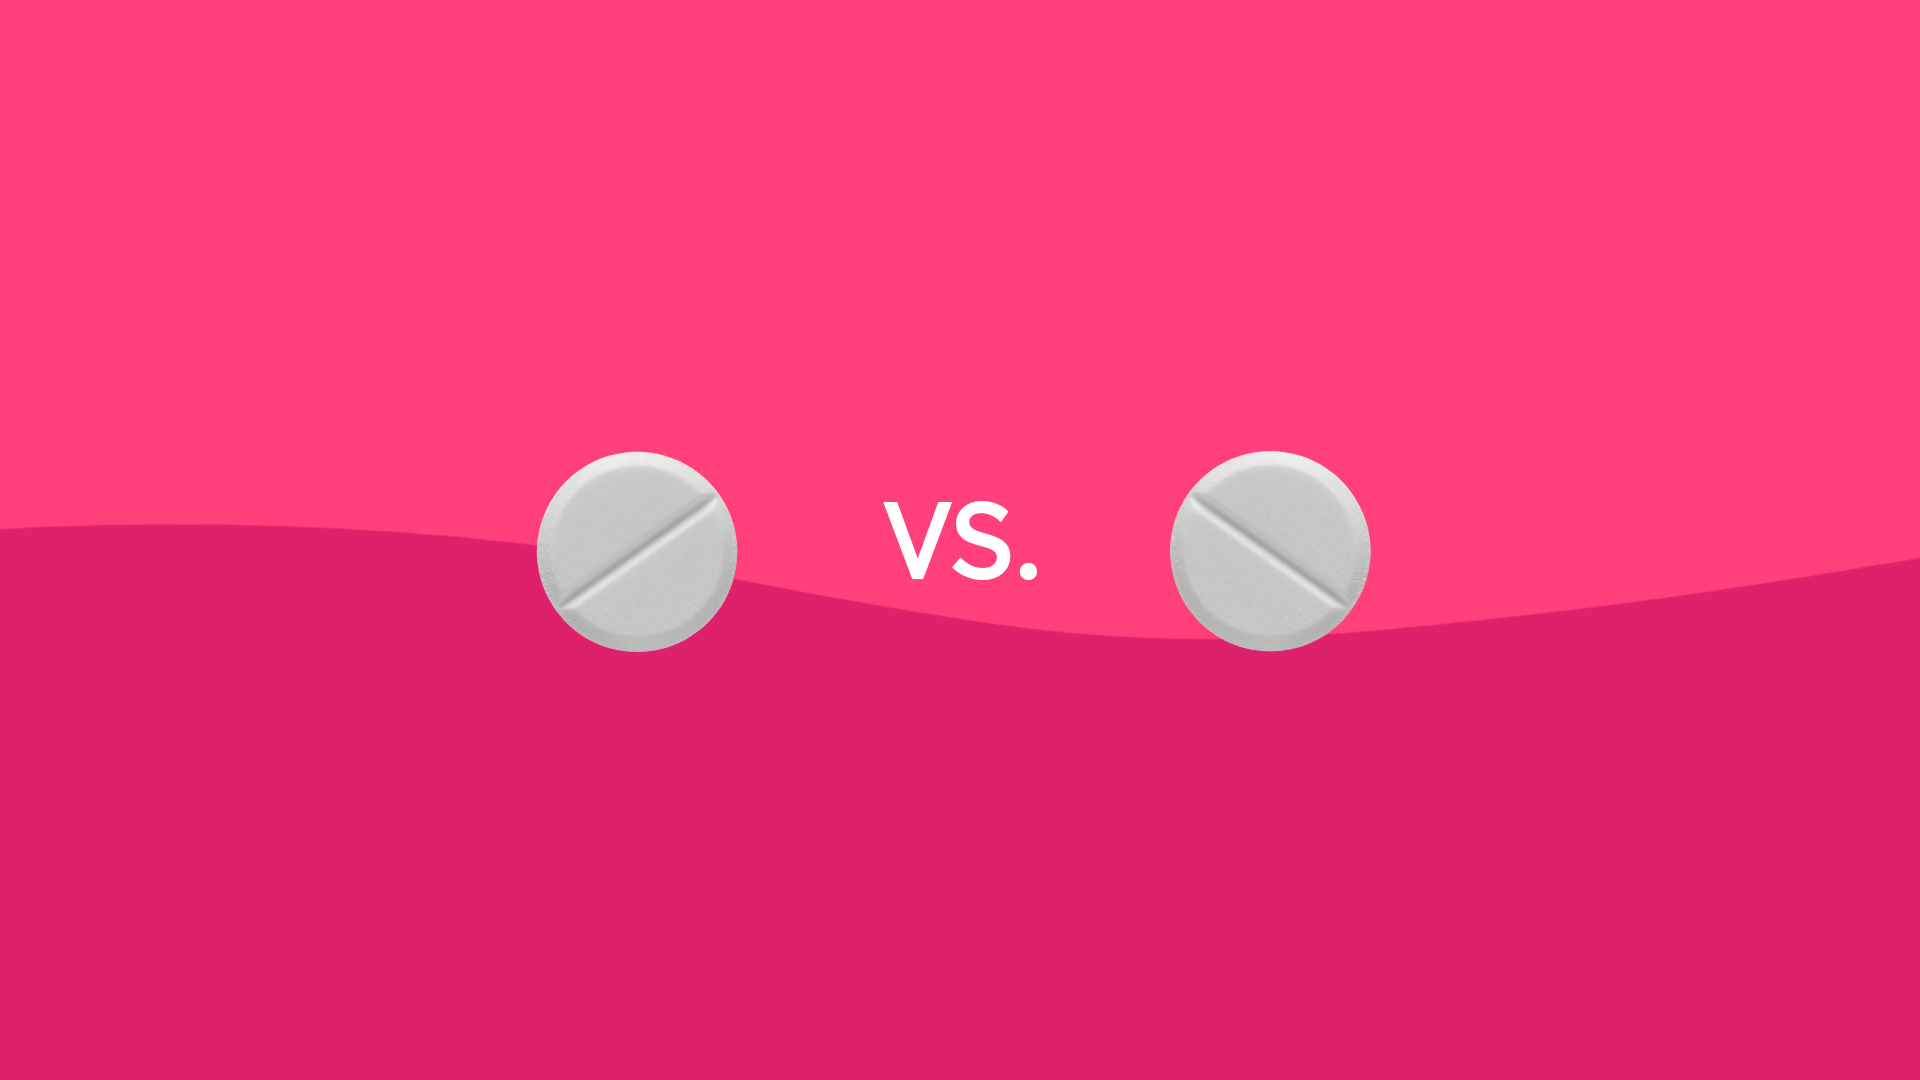 Revatio vs. Viagra: Differences, similarities, and which is better for you